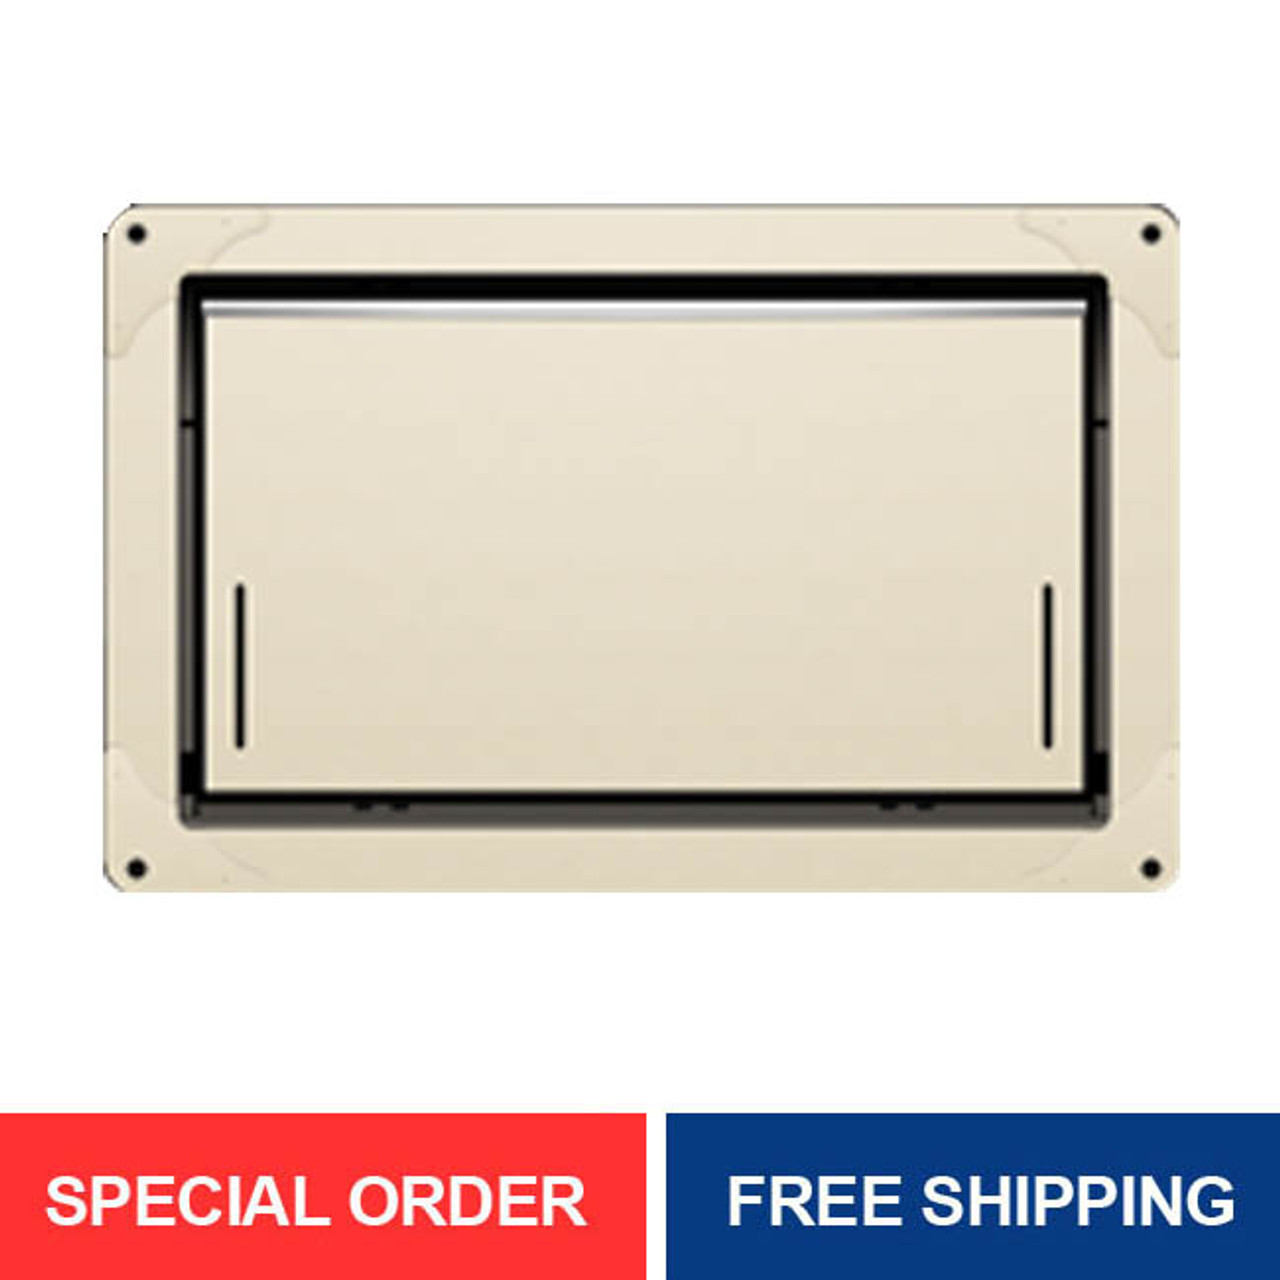 Smart Vent 1540-574 Wheat Overhead Garage Door Flood Vent